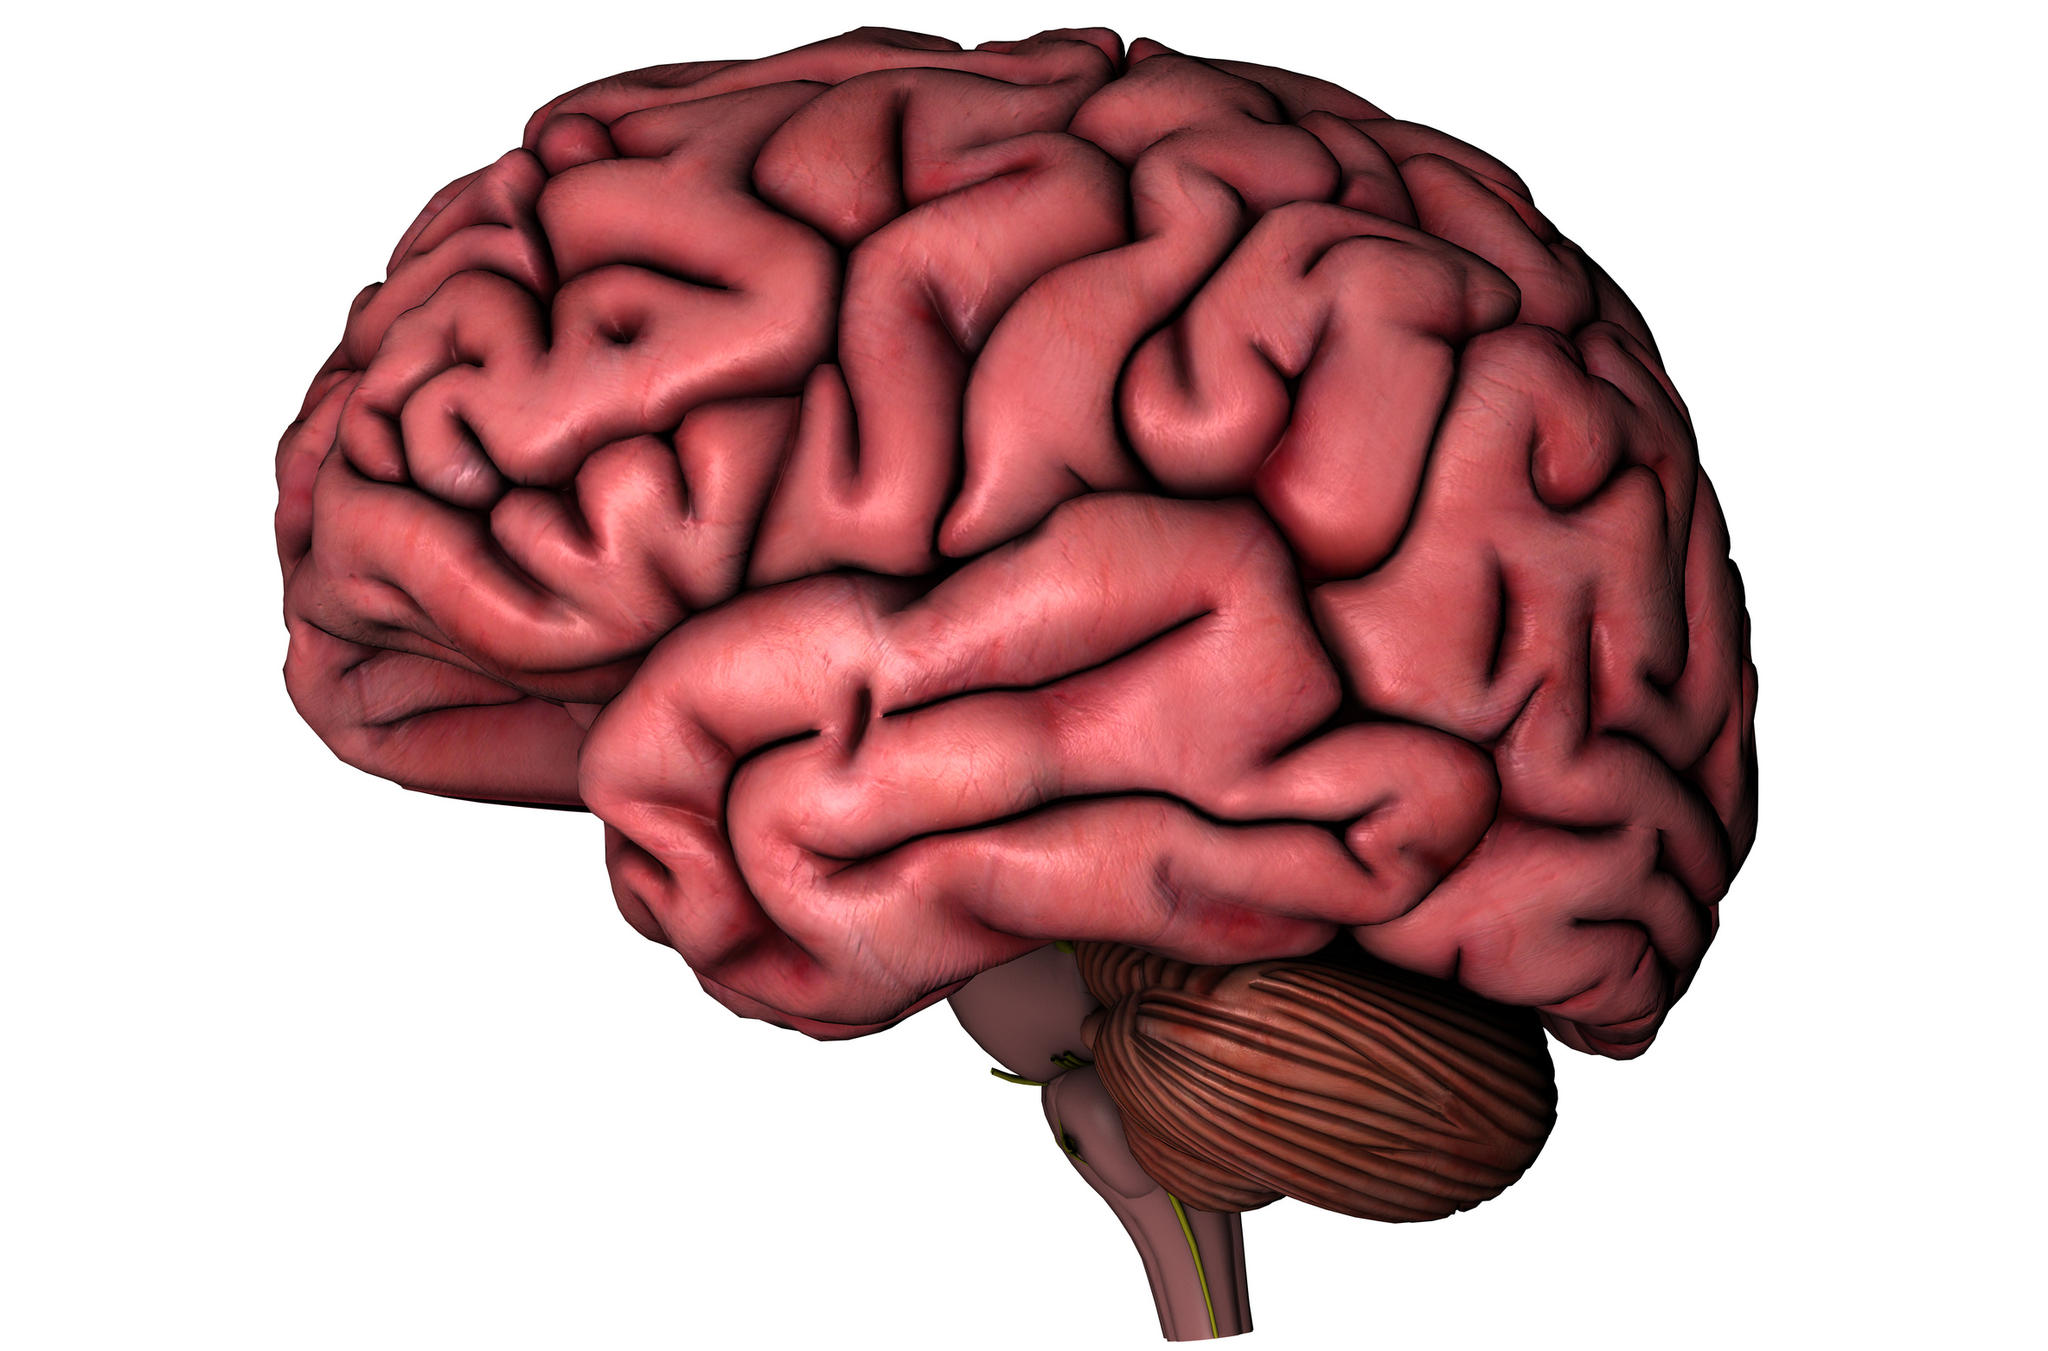 Brain Outline Image